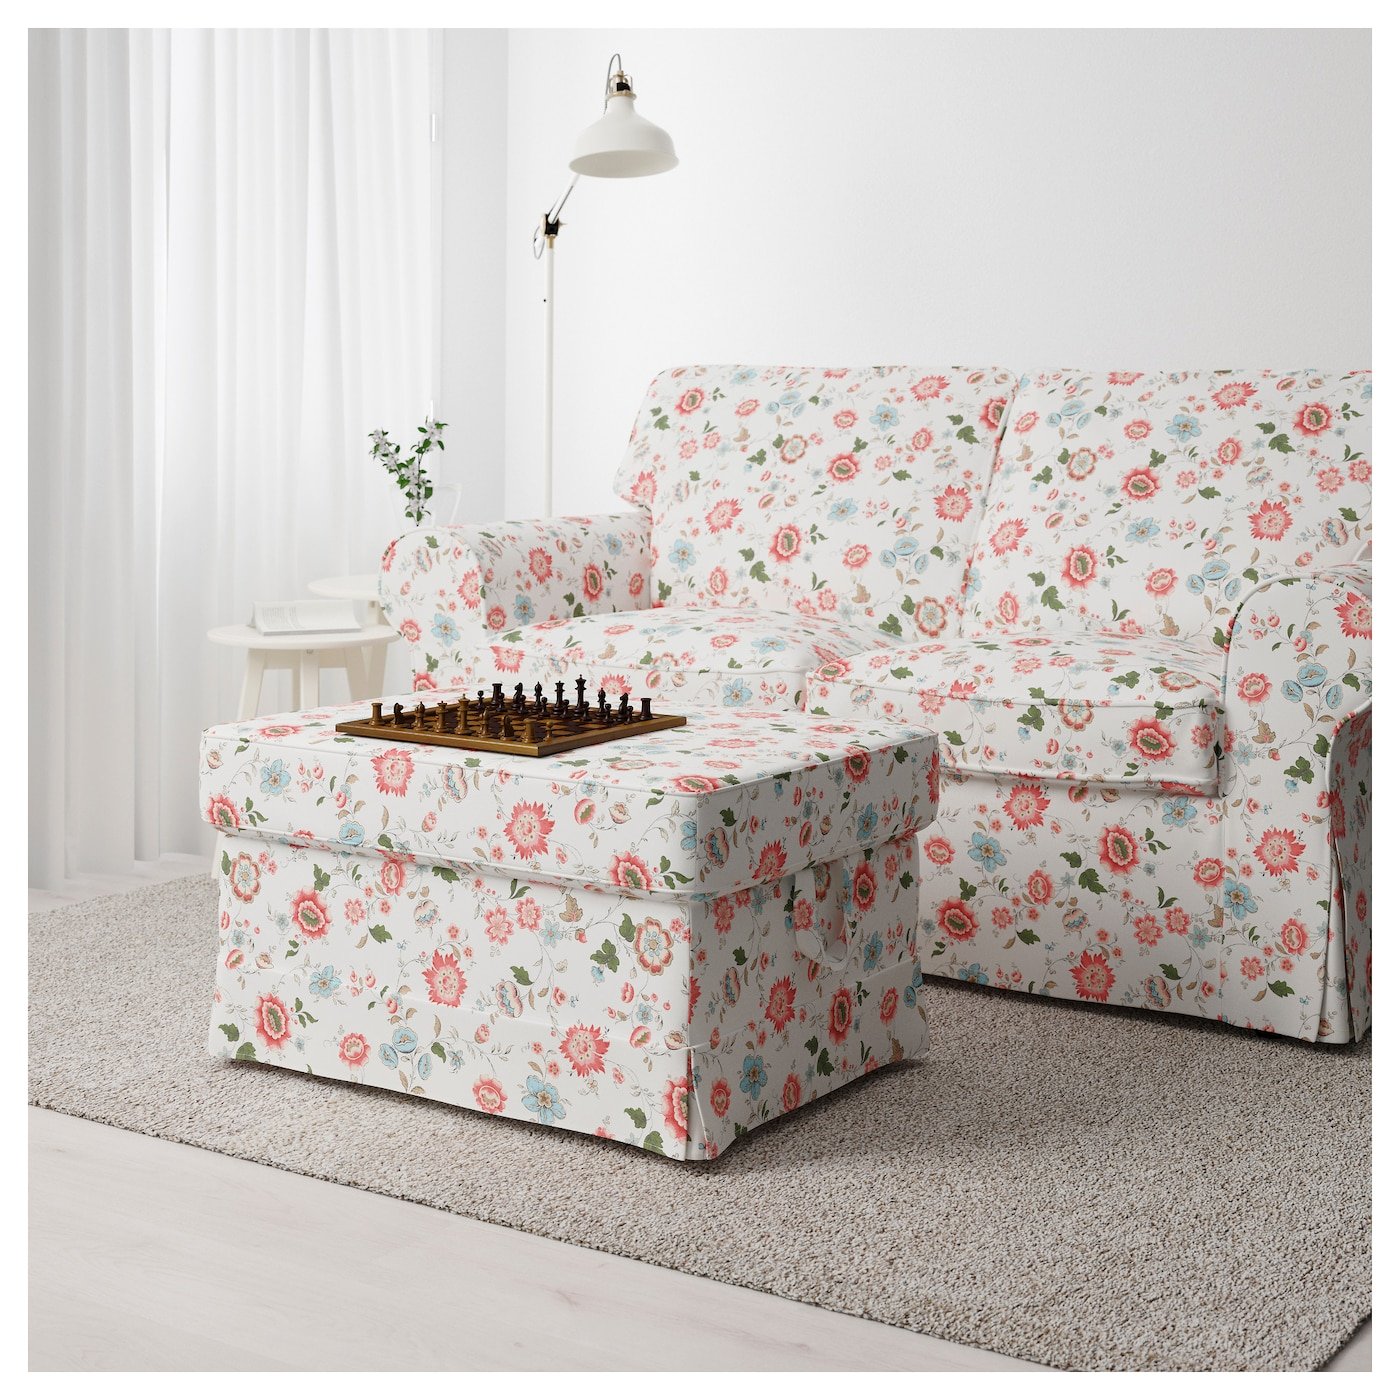 IKEA EKTORP footstool The cover is easy to keep clean as it is removable and can be machine washed.